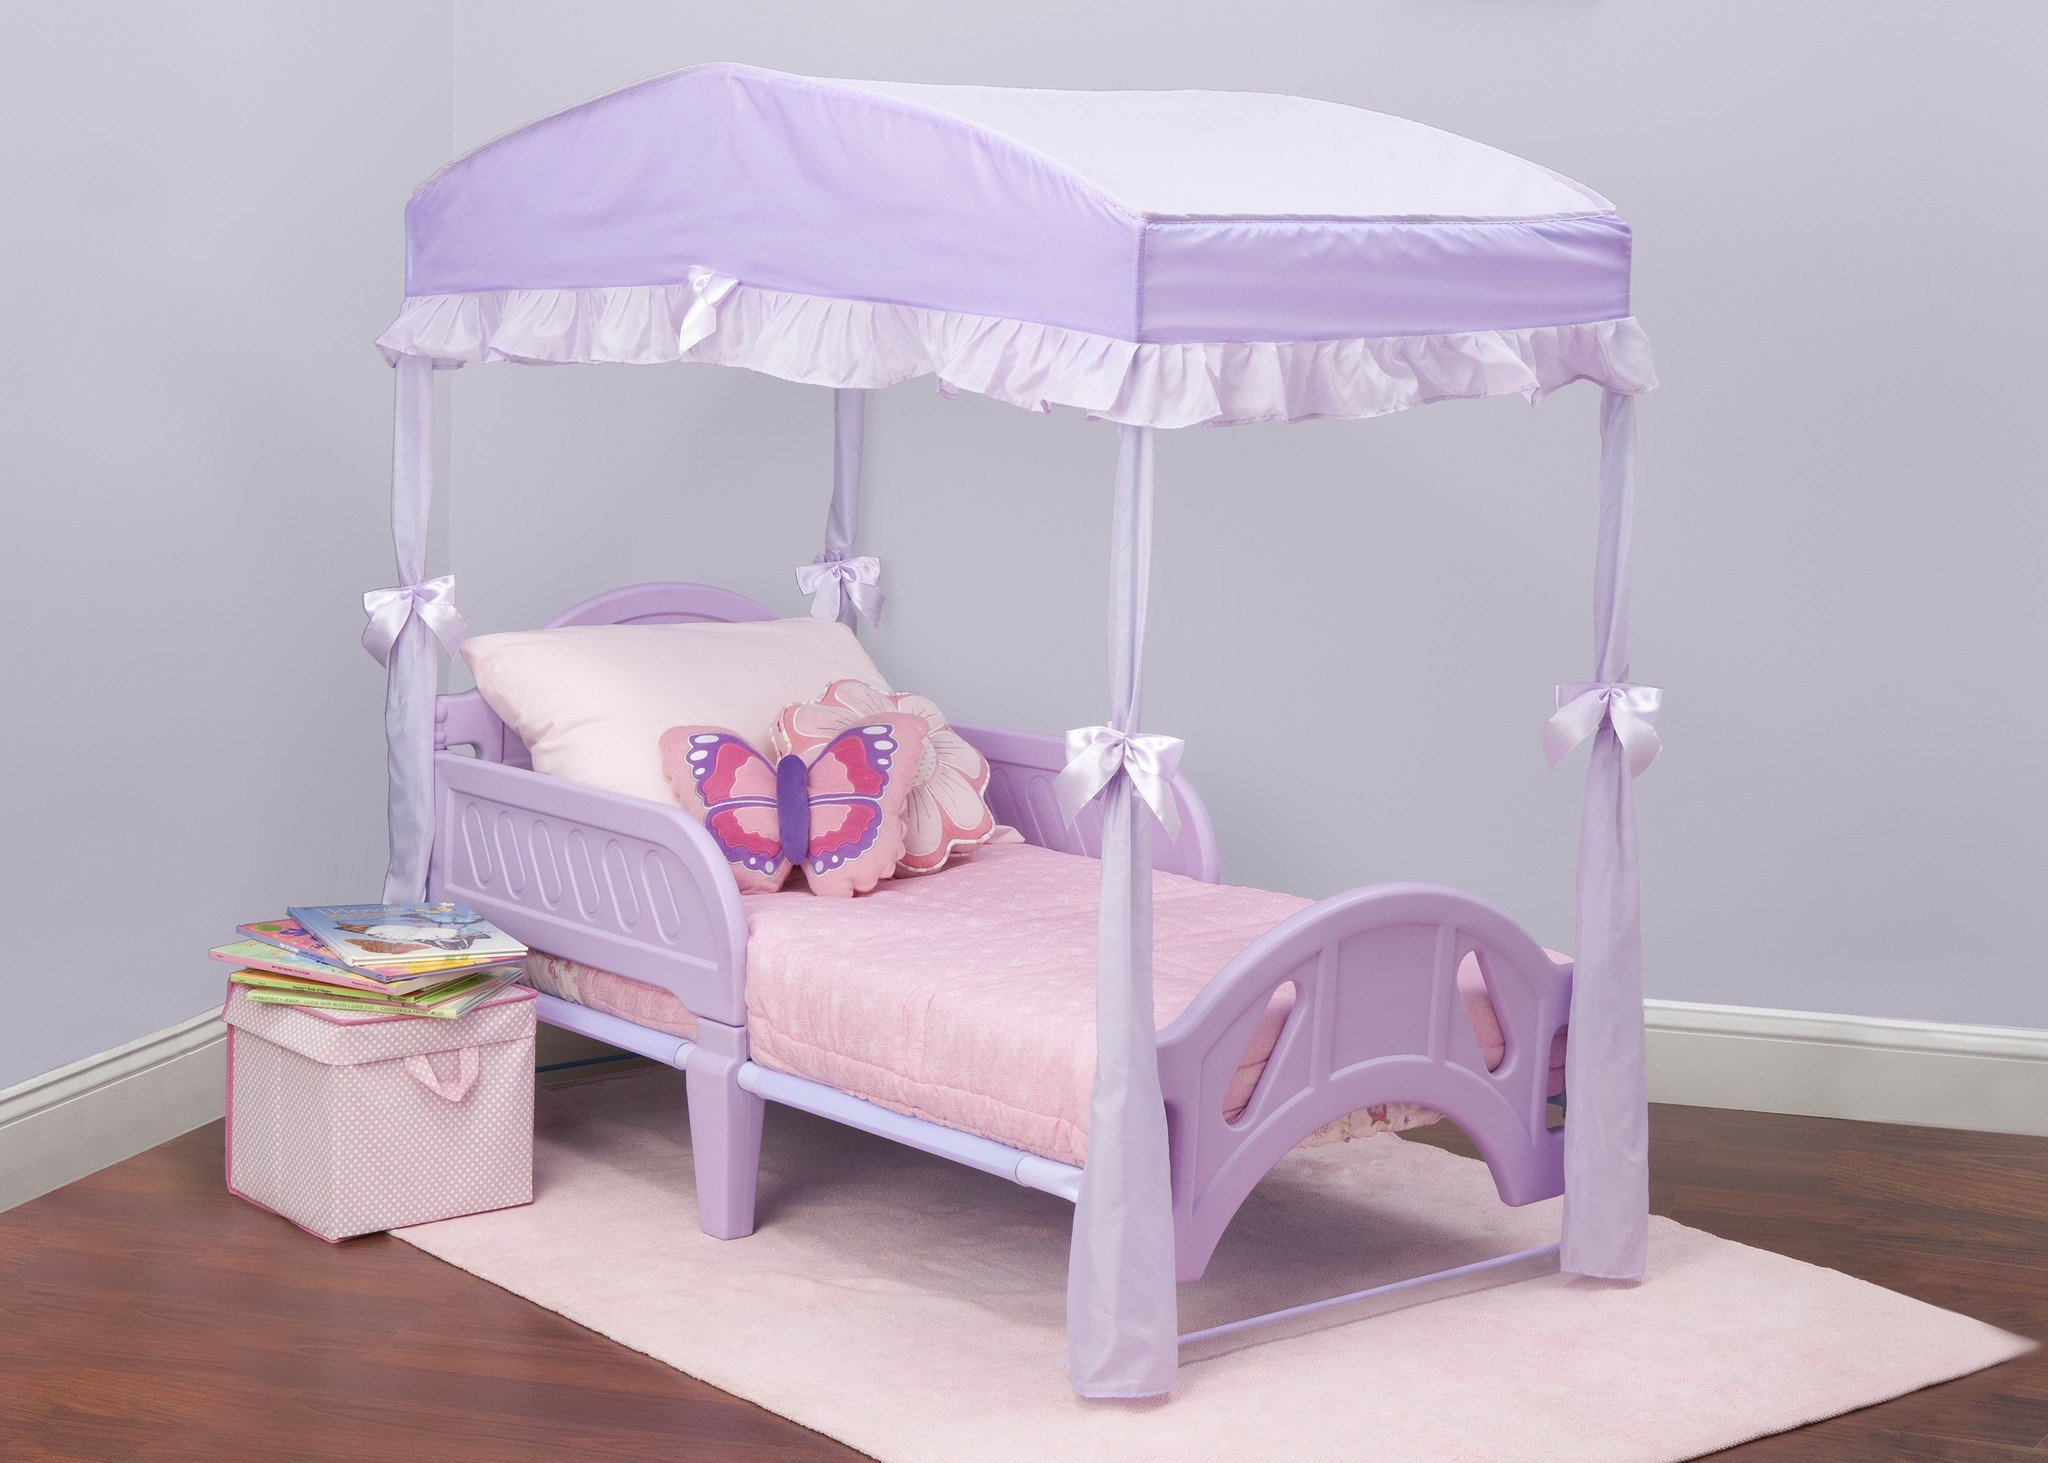 Best Toddler Canopy Bed Set Delta Children Minnie Mouse 3 Piece Toddler Canopy Bedroom Set Sc 1 St With Pictures